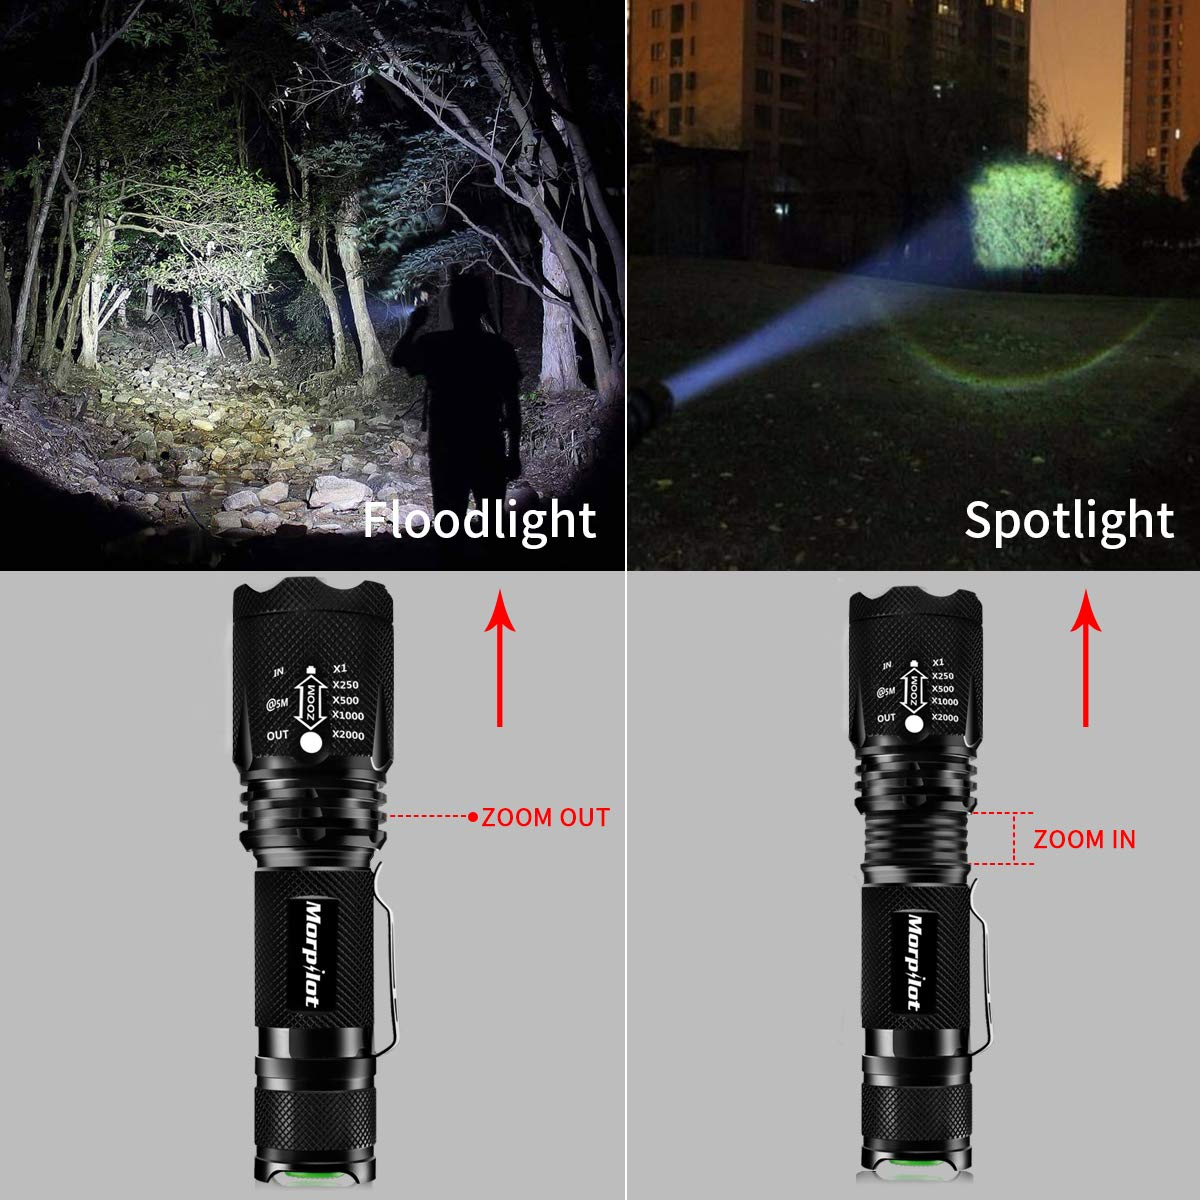 morpilot LED Torch, 2 in 1 UV Torch UV Flashlight with 395nm Black Light, Super Bright LED Flashlight with 500 Lumens 4 Modes Light, Adjustable Focus Tactical Flashlight, Aluminum Alloy Body, 2 Packs